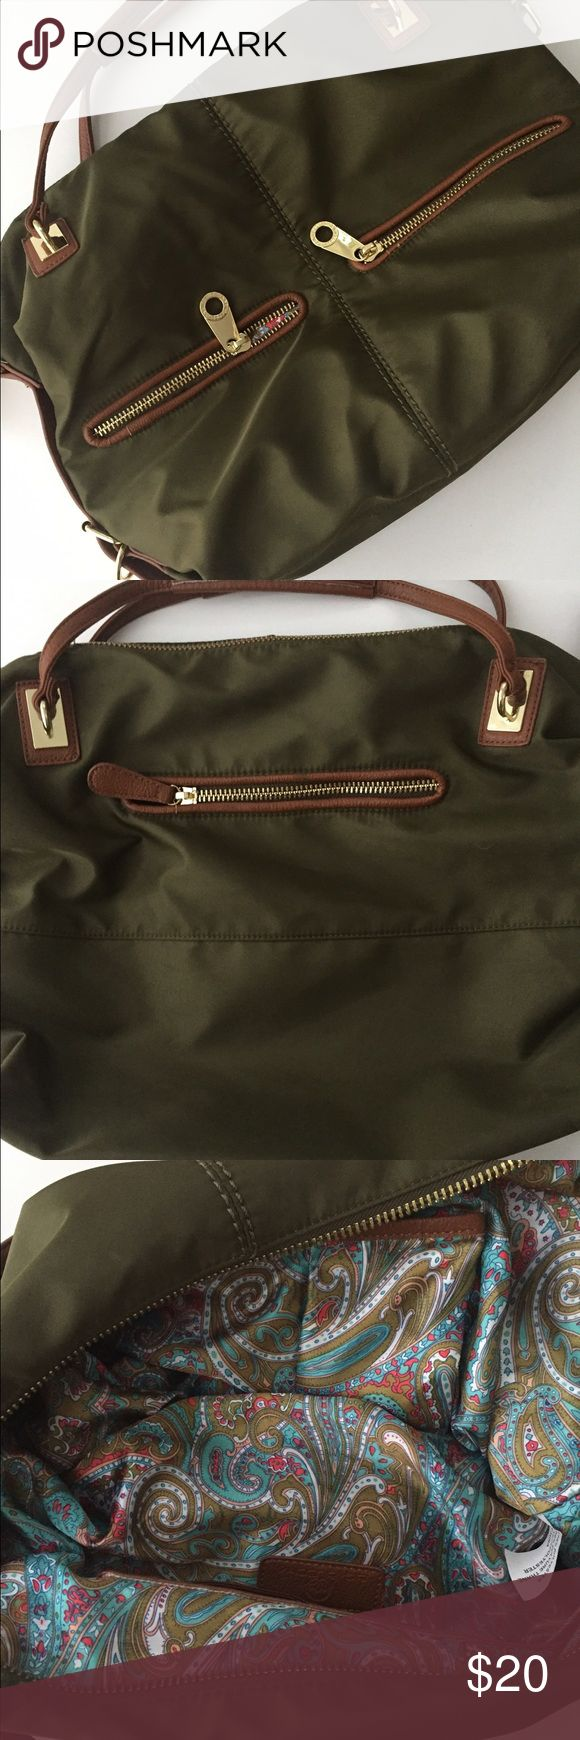 Big Buddha Olive Bag This bag has so many pockets and a beautiful Paisley lining. Barely used great condition! Big Buddha Bags